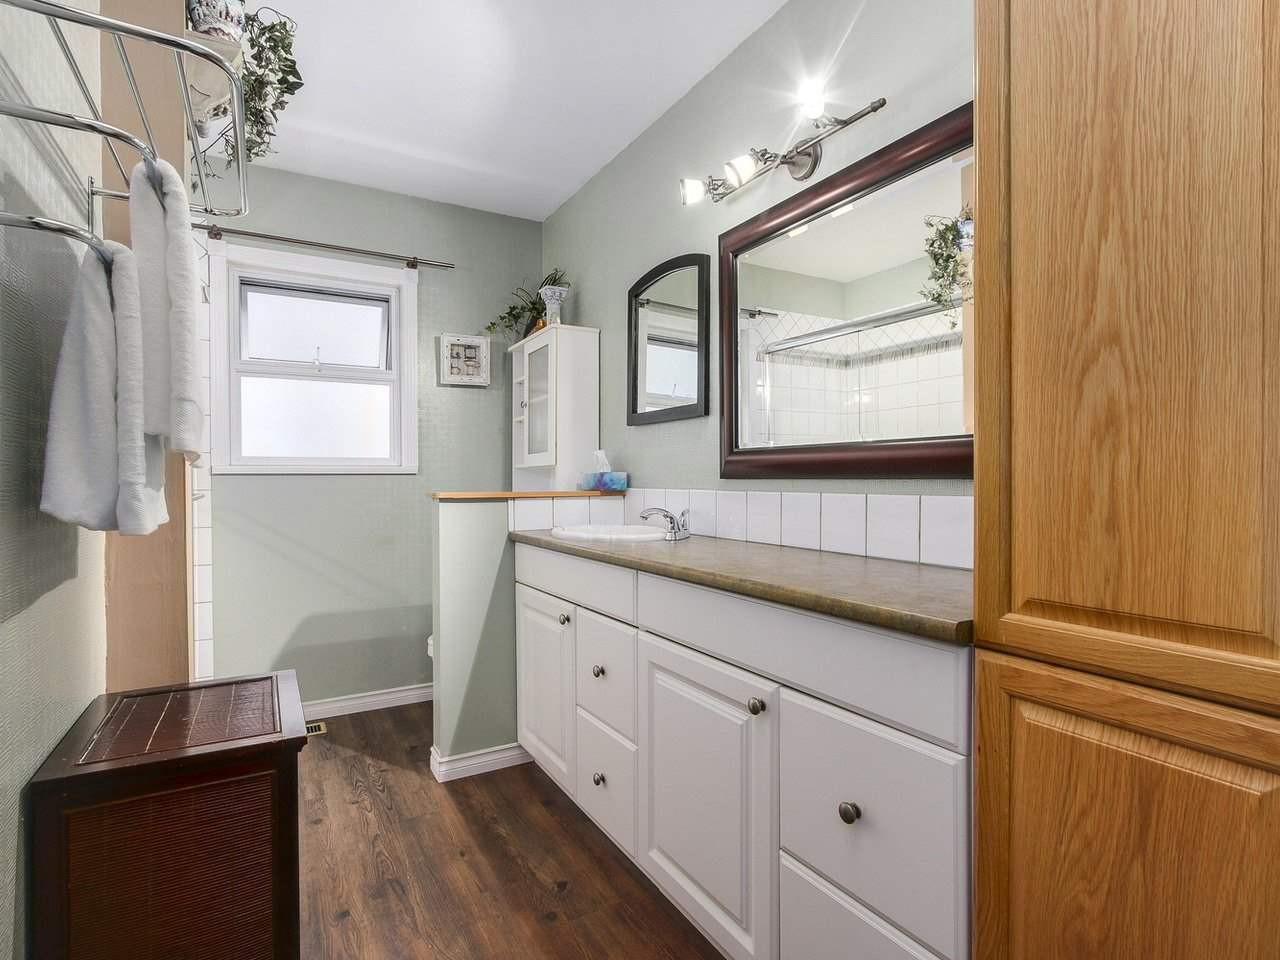 Photo 13: C 5068 47A Avenue in Delta: Ladner Elementary House 1/2 Duplex for sale (Ladner)  : MLS(r) # R2179730